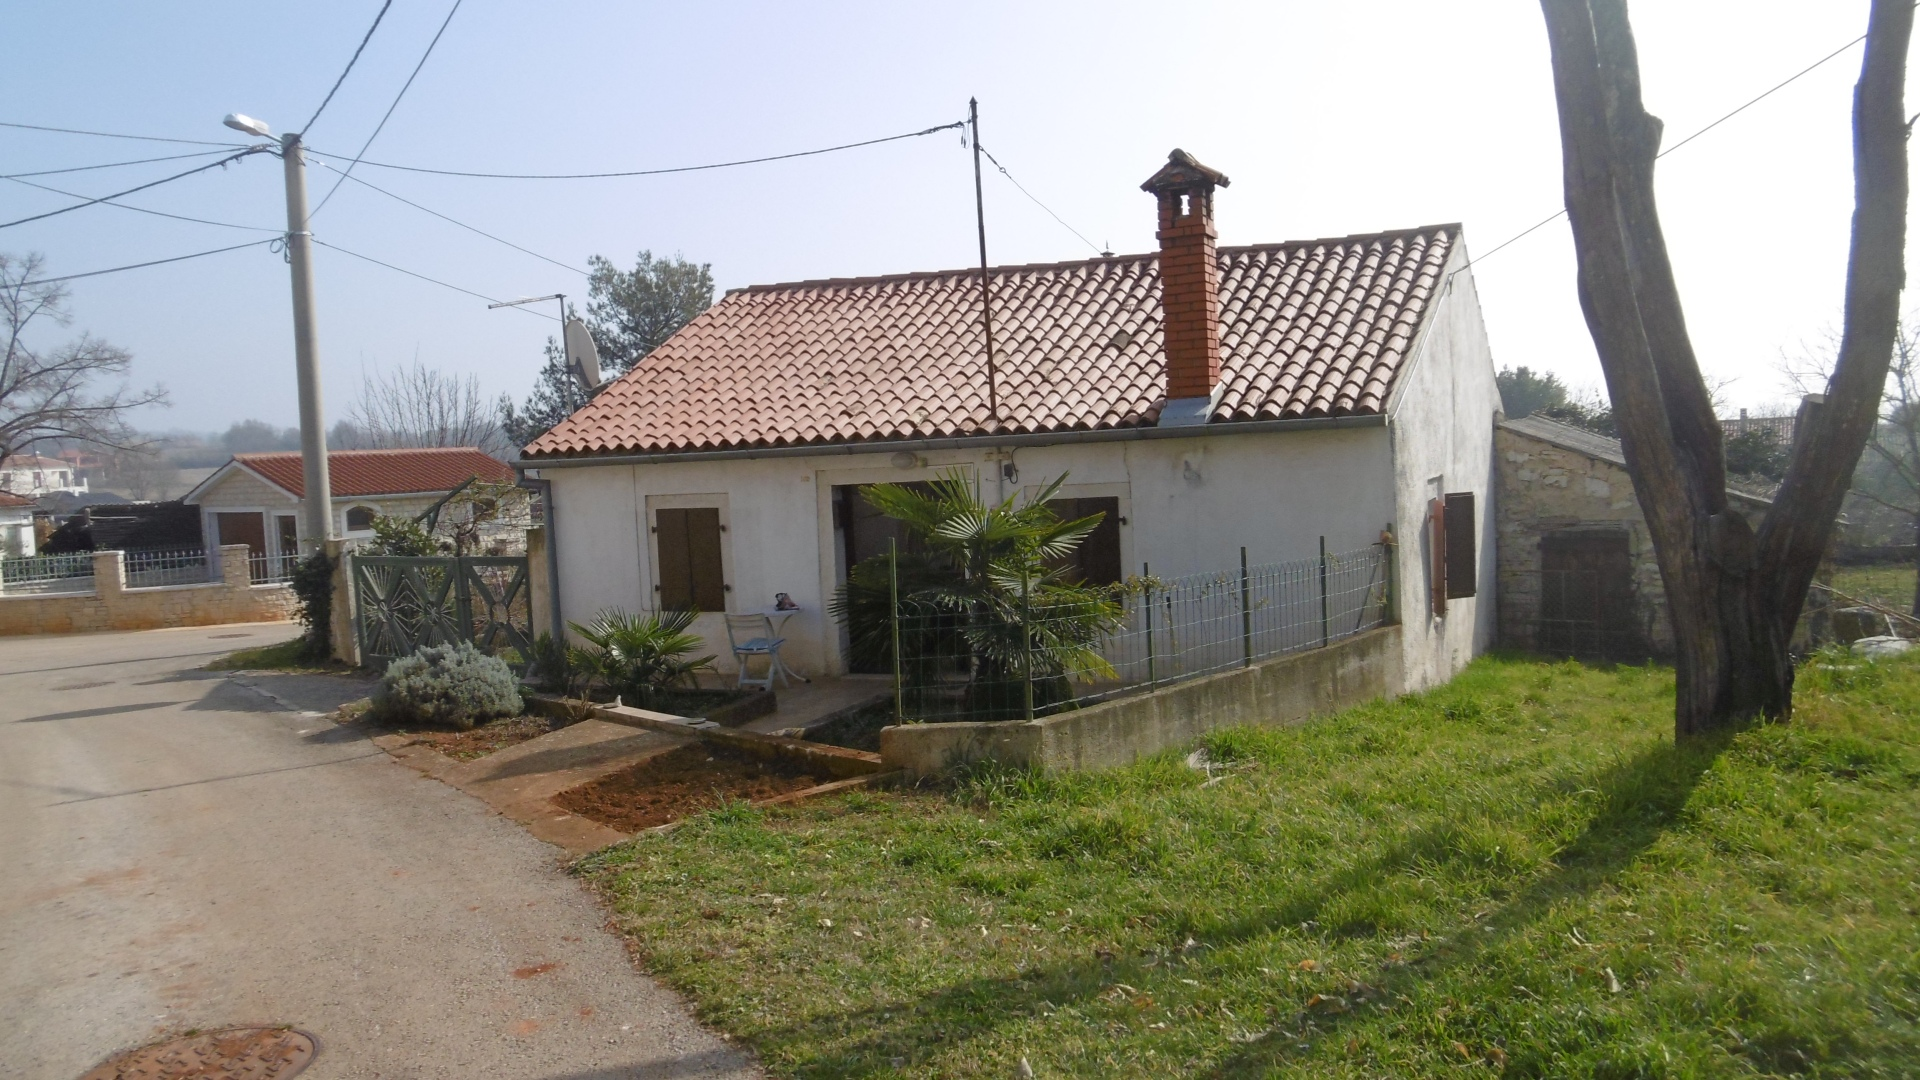 P-907 Detached small house only 8 km from the sea, some sea view